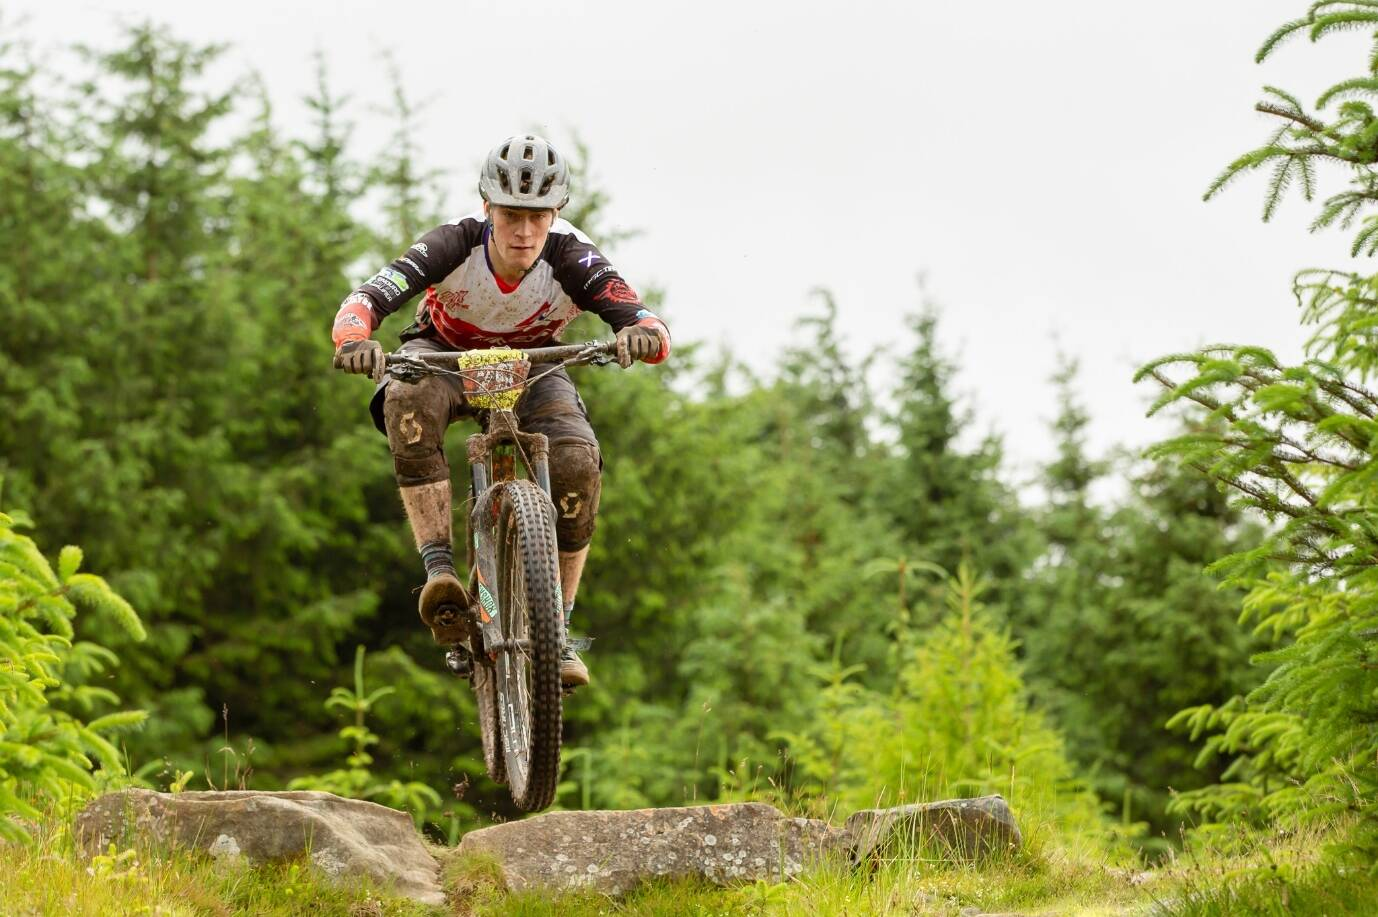 Douglas Carchrie, winner of the Dick Balharry Prize in 2018. He is pictured doing a jump in a wooded area on a mountain bike.